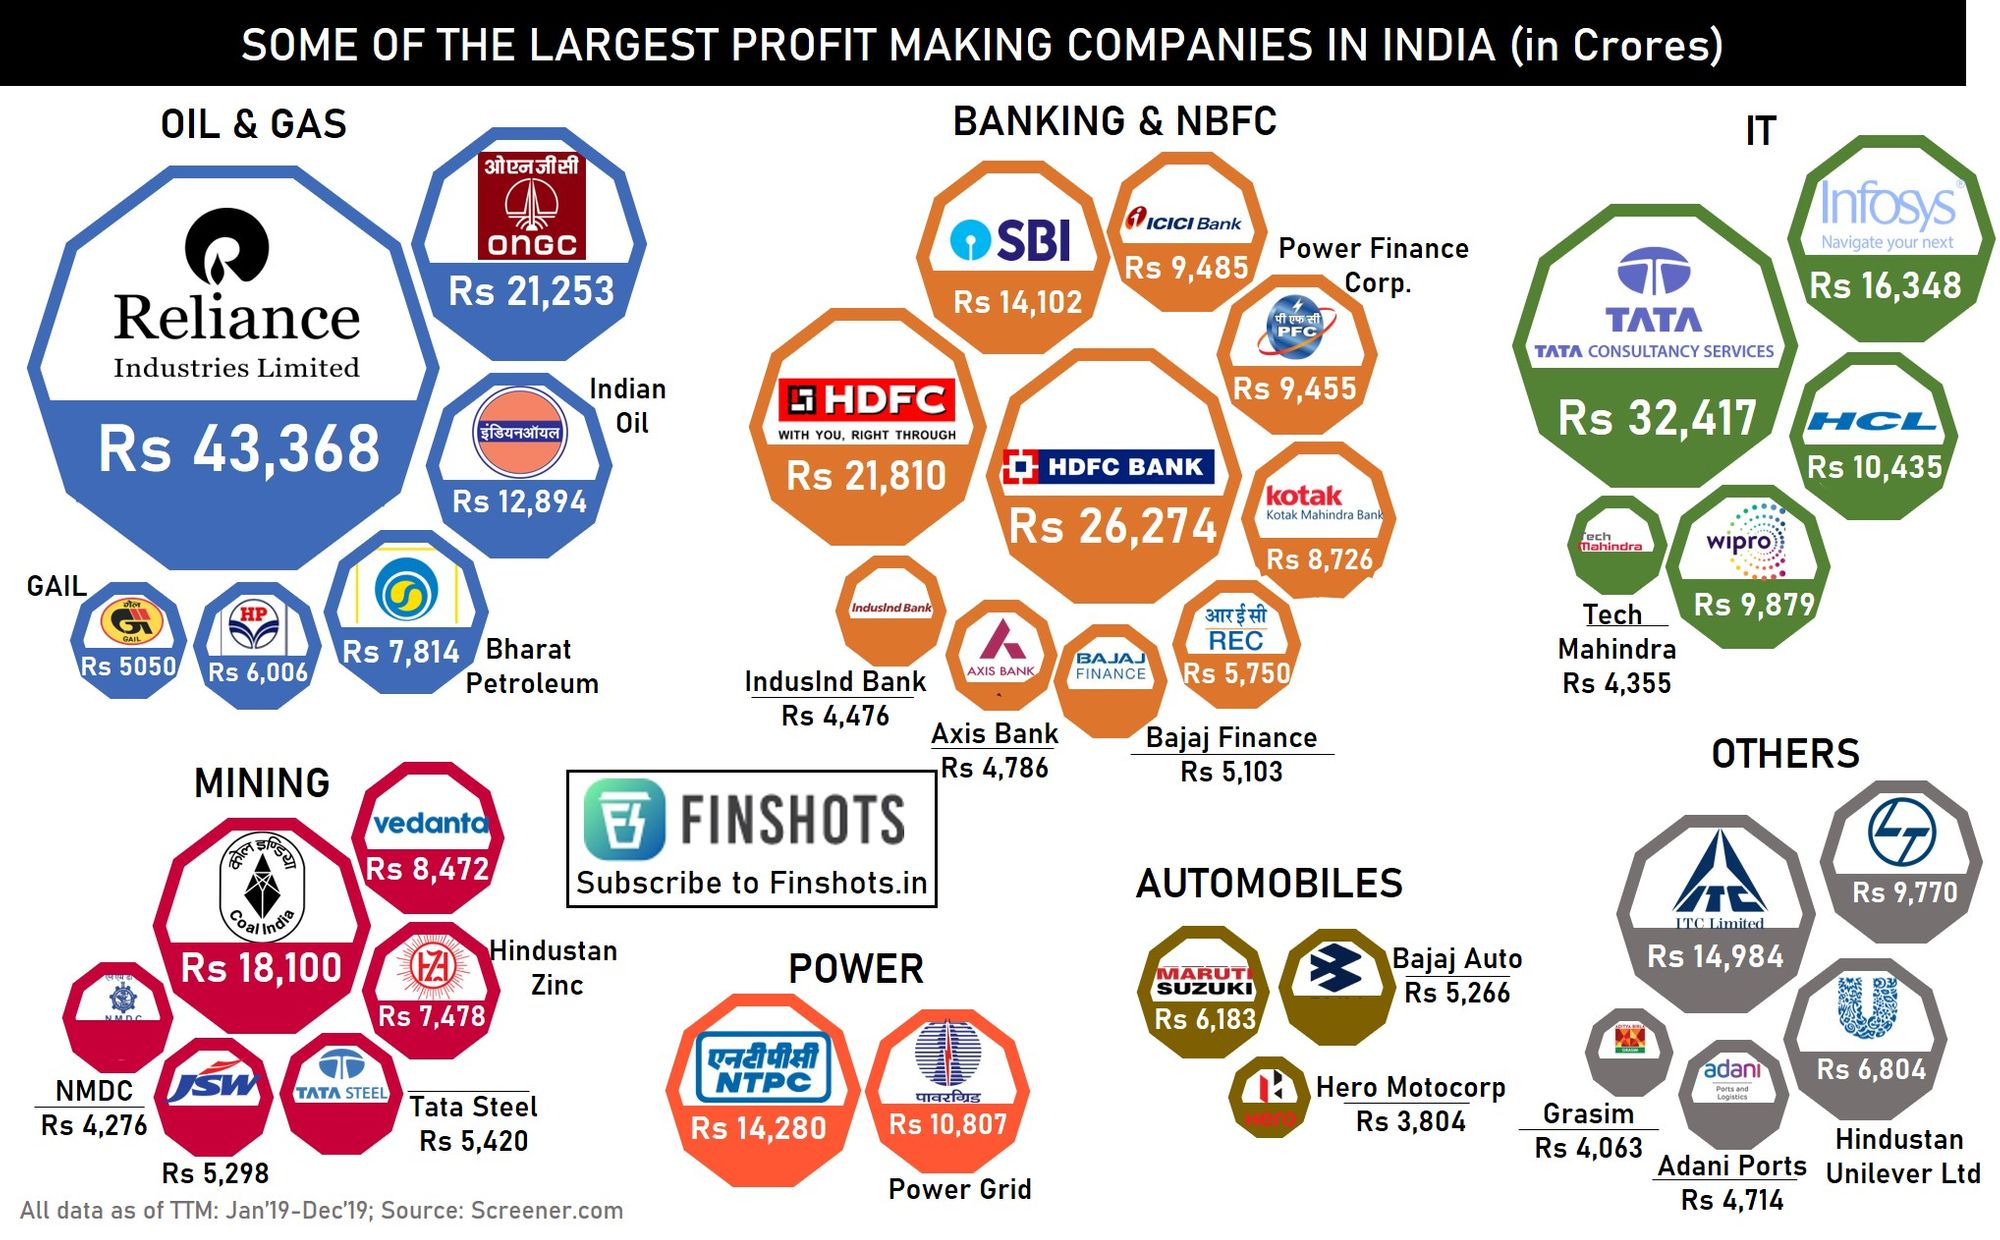 Largest profit-making companies in India